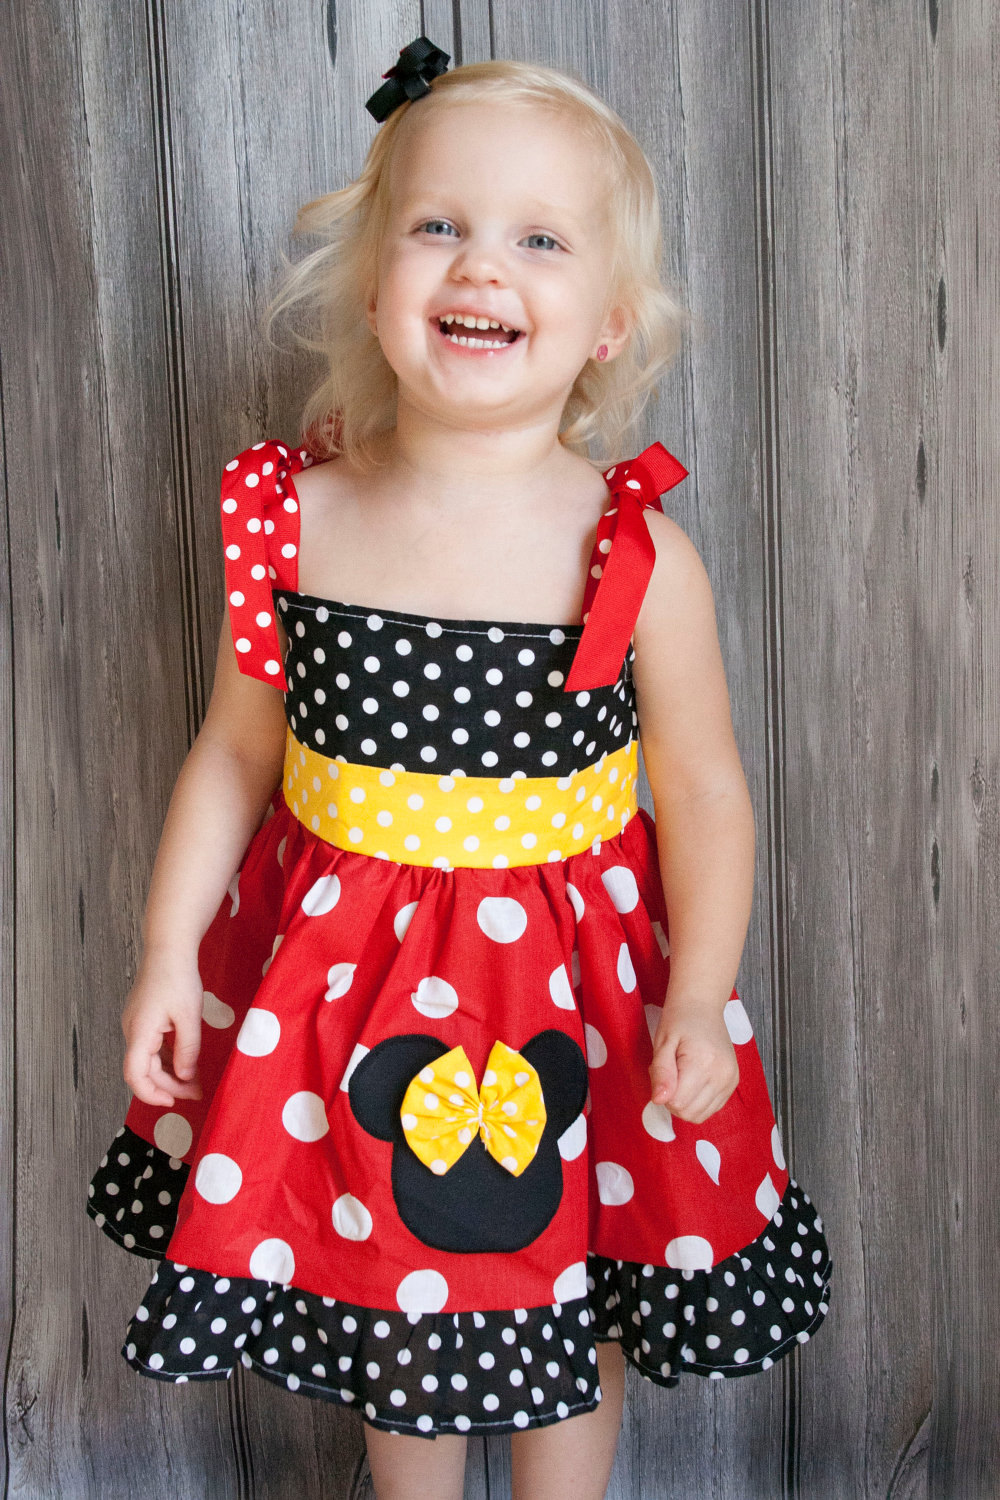 Minnie Mouse Dresses for Toddlers